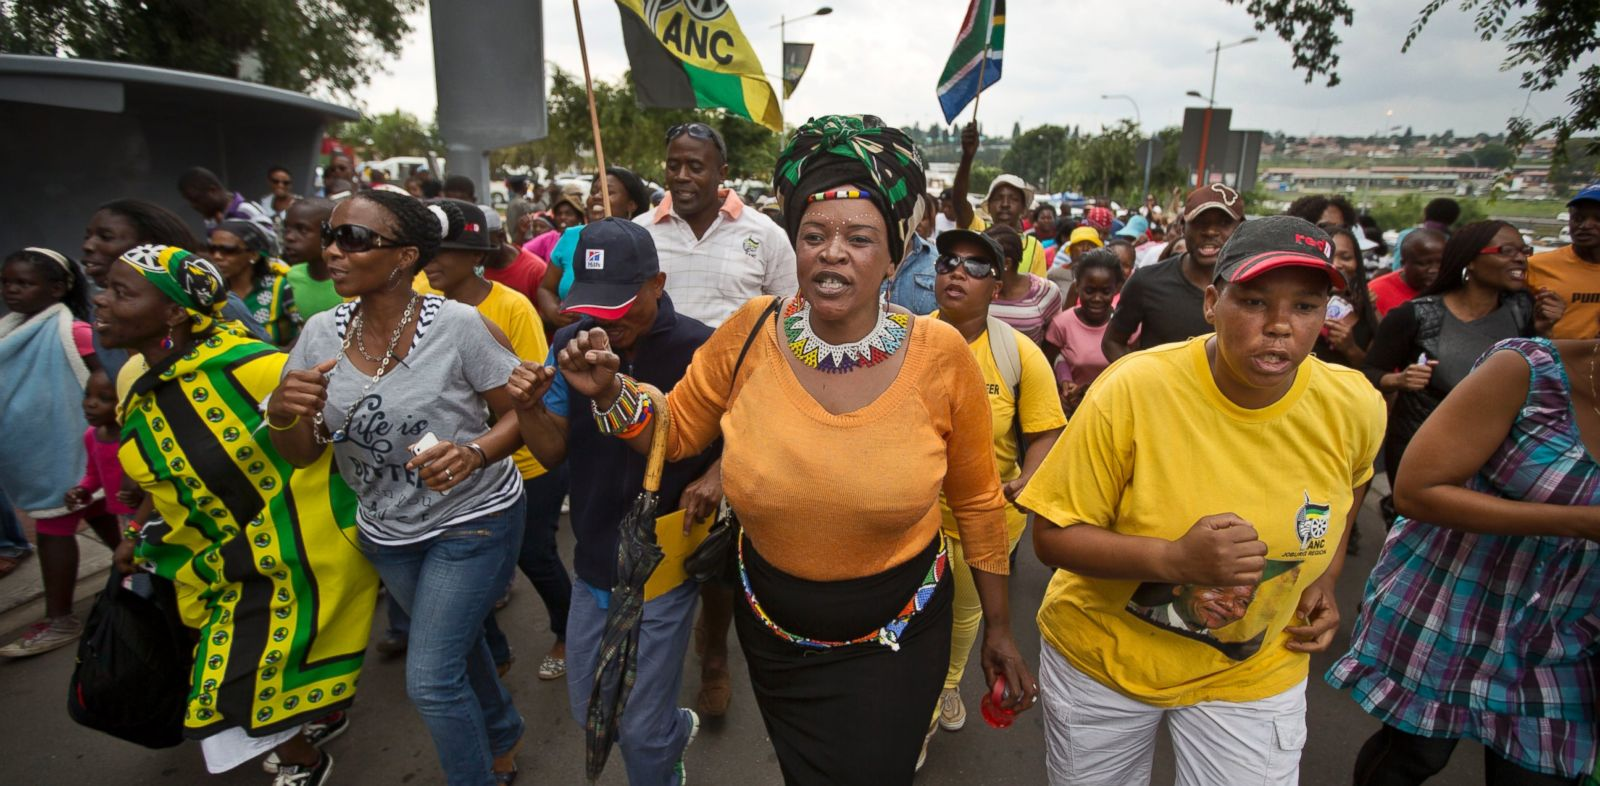 PHOTO: Township residents march to celebrate the life of Nelson Mandela